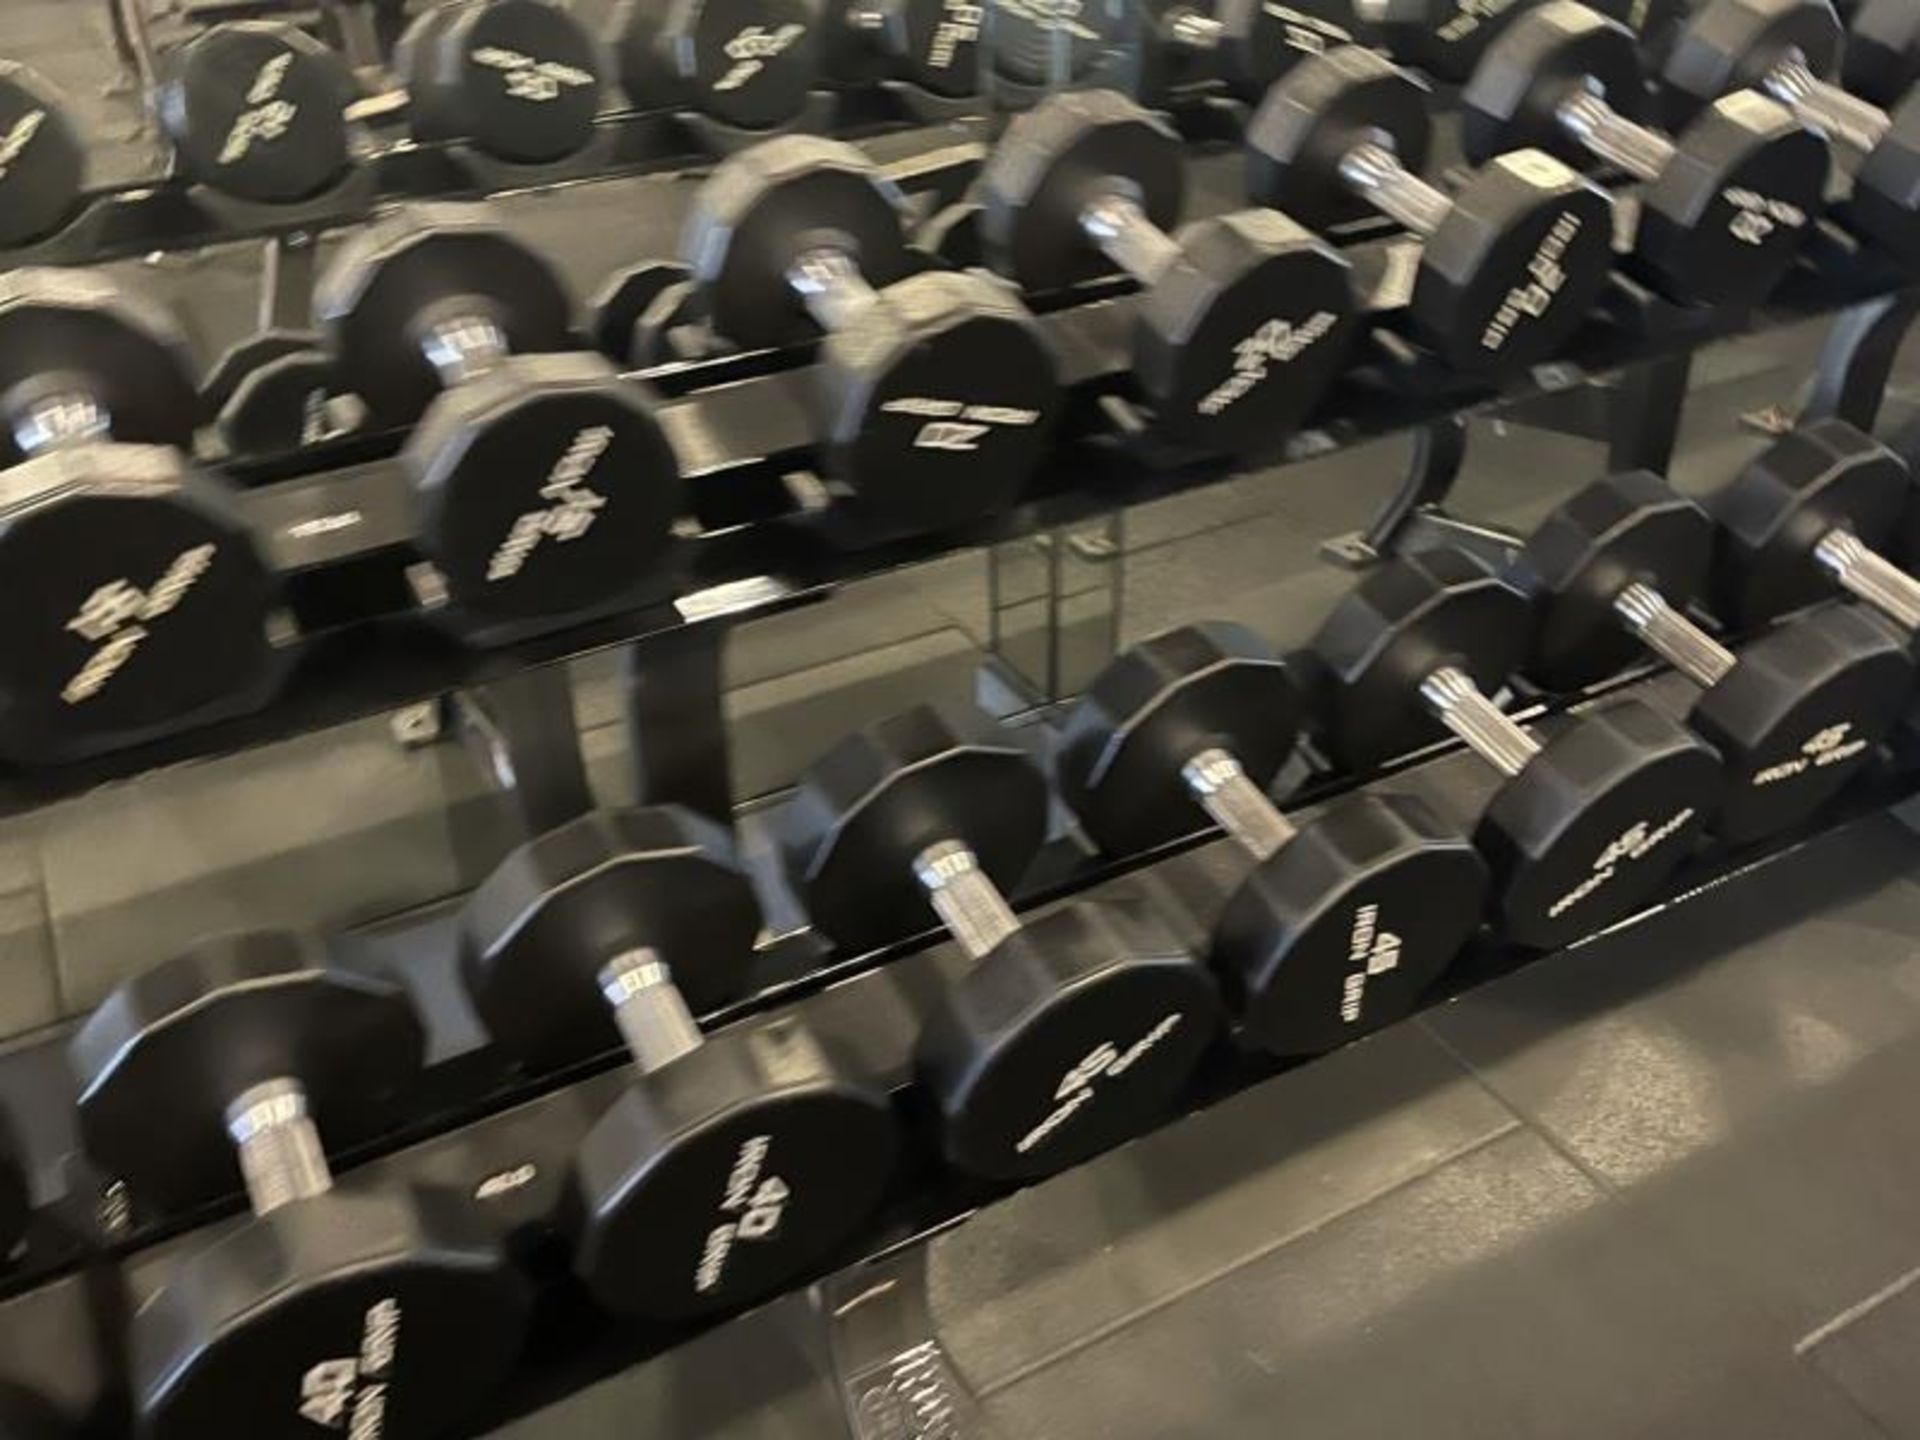 Iron Grip Dumbbell 5-100# with Hammer Strength 2 Tier Racks - Image 4 of 9